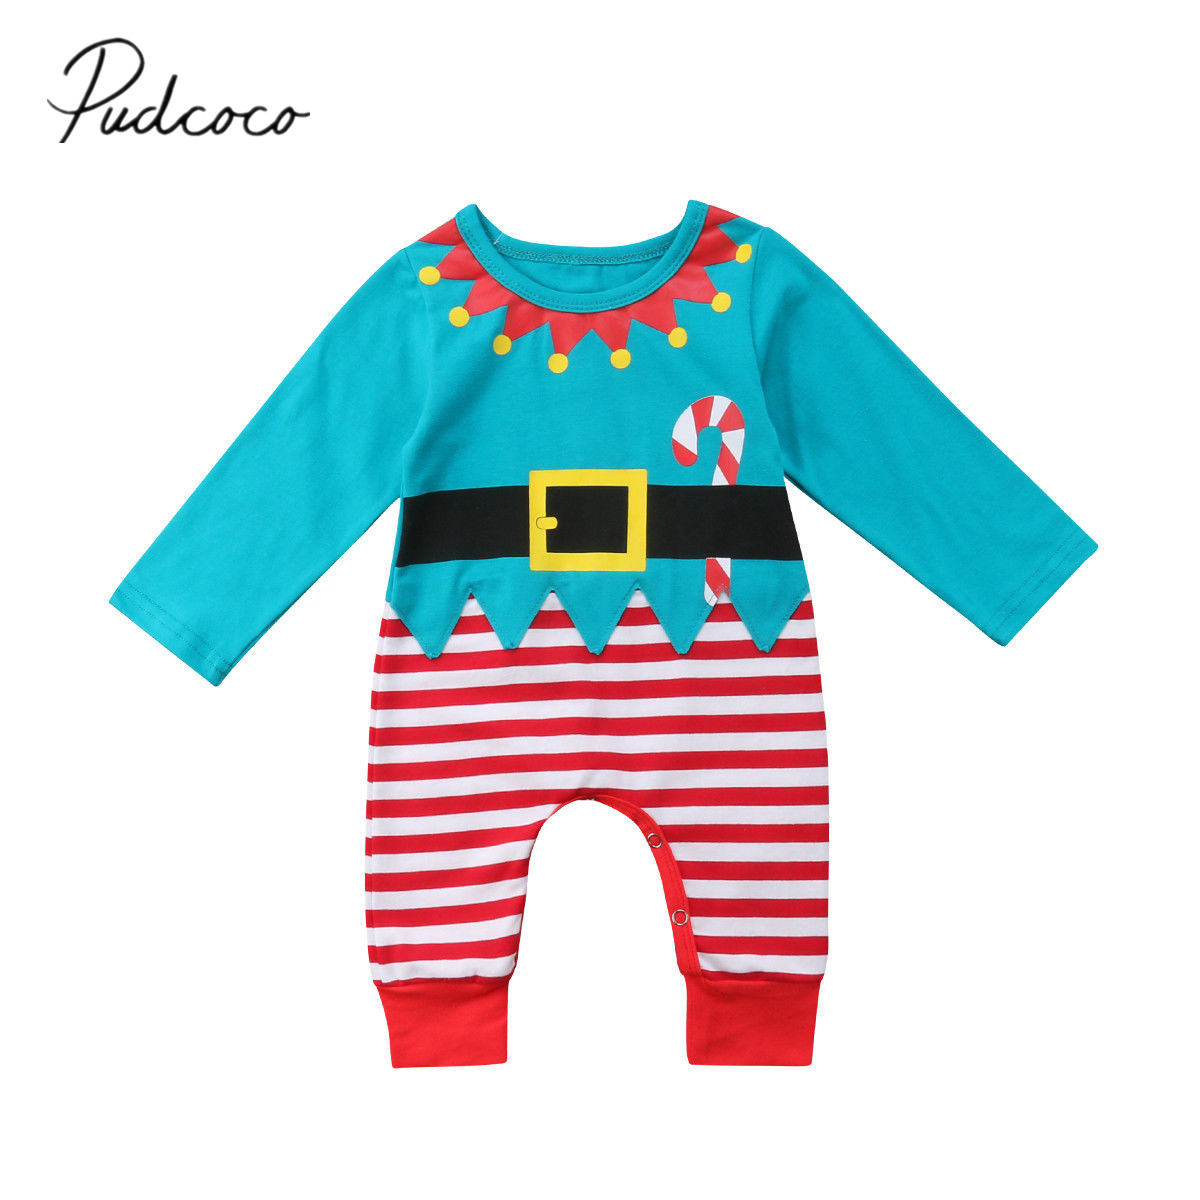 Pudcoco Baby Girl Newborn Baby Boy Christmas Costume One Piece   Romper   0-24M Fits Baby Clothes Long Sleeve Autumn Winter Outfits